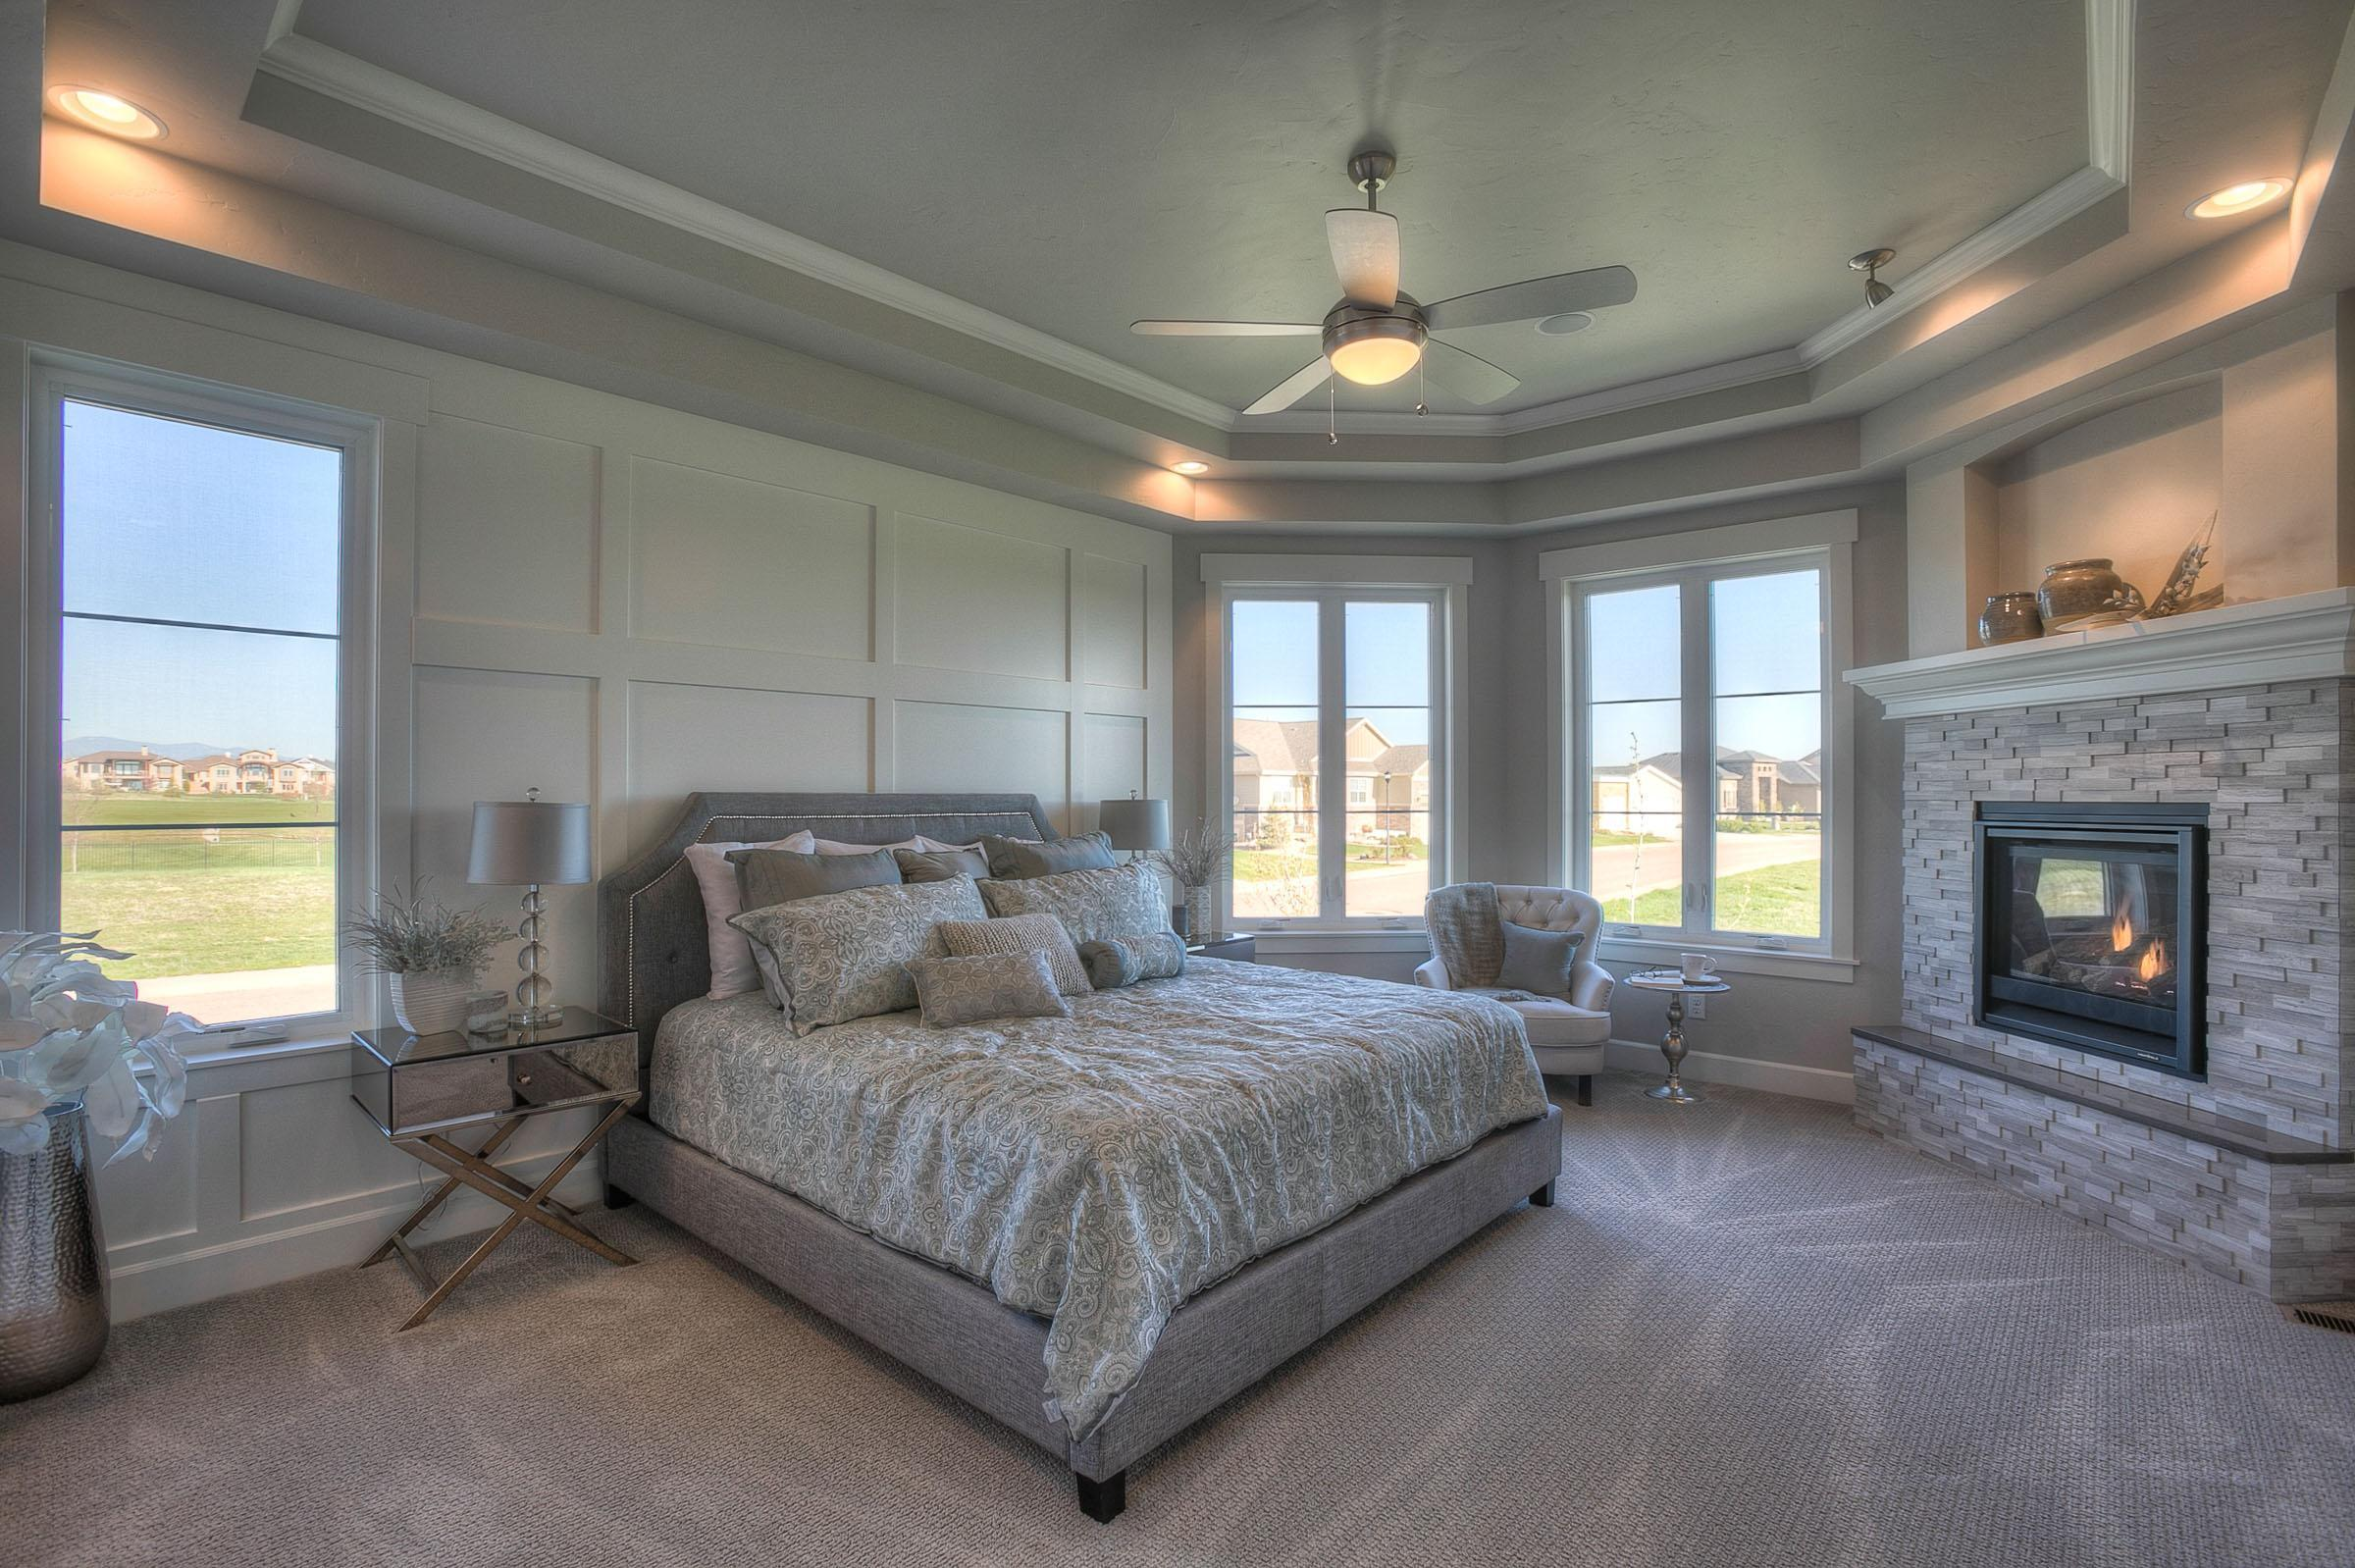 Bedroom featured in the Castle Pines By Landmark Homes  in Greeley, CO